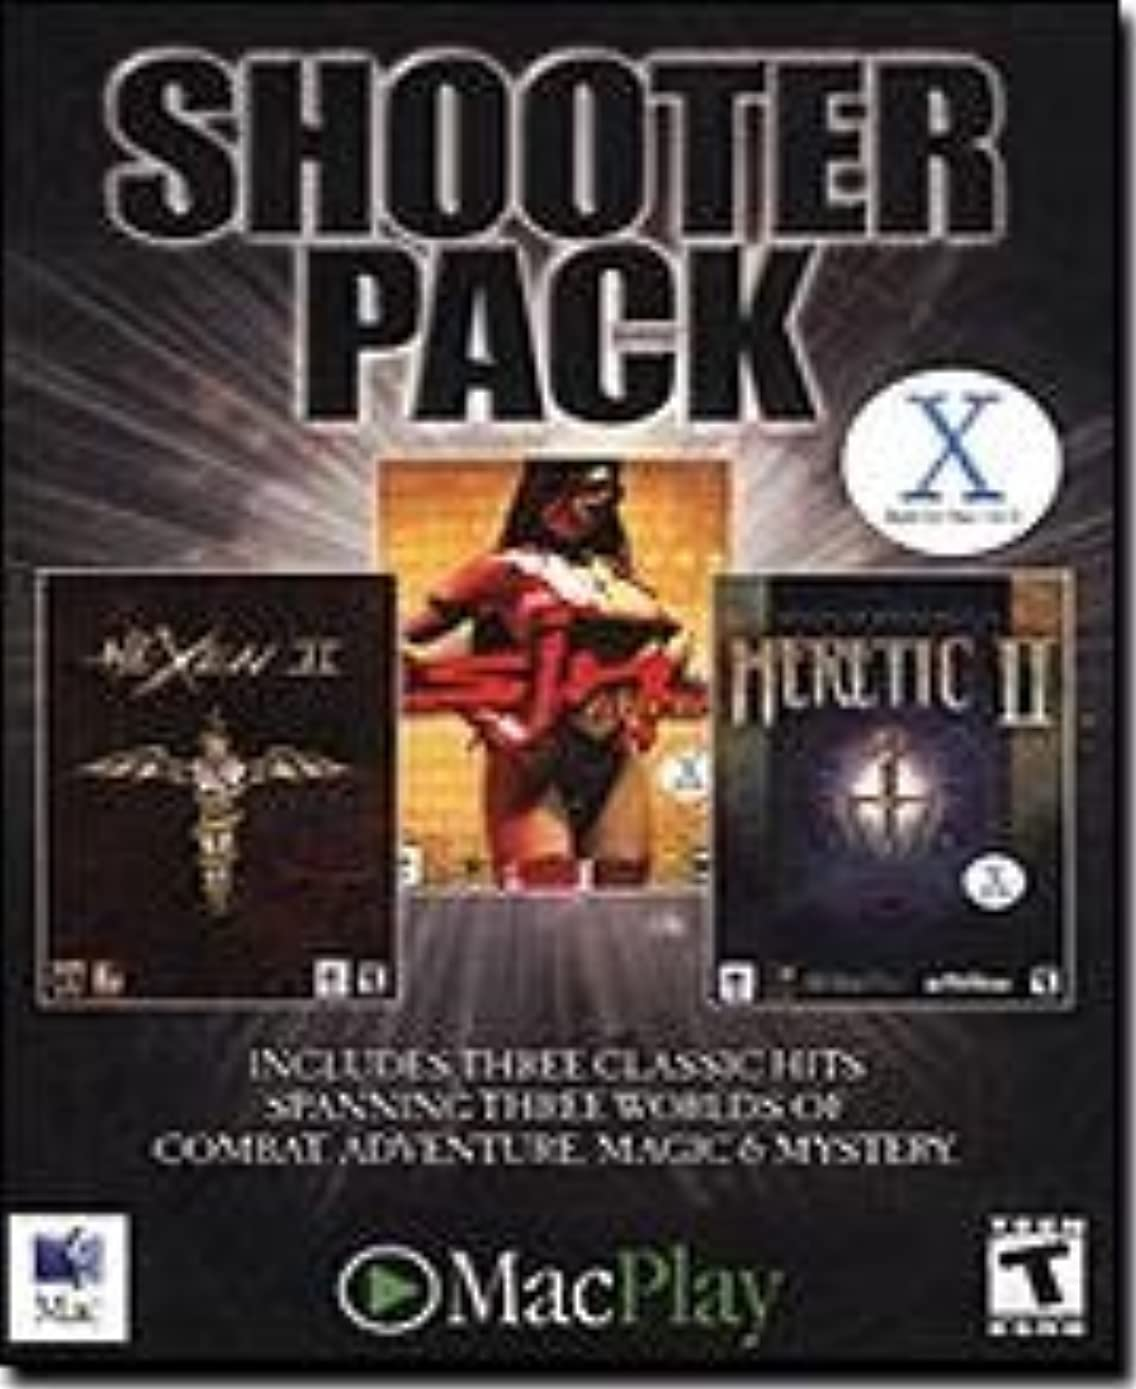 破壊去るまたねMacPlay 1000-01180 Shooter Pack Mac: Hexen II, Heretic II, Sin Gold (輸入版)